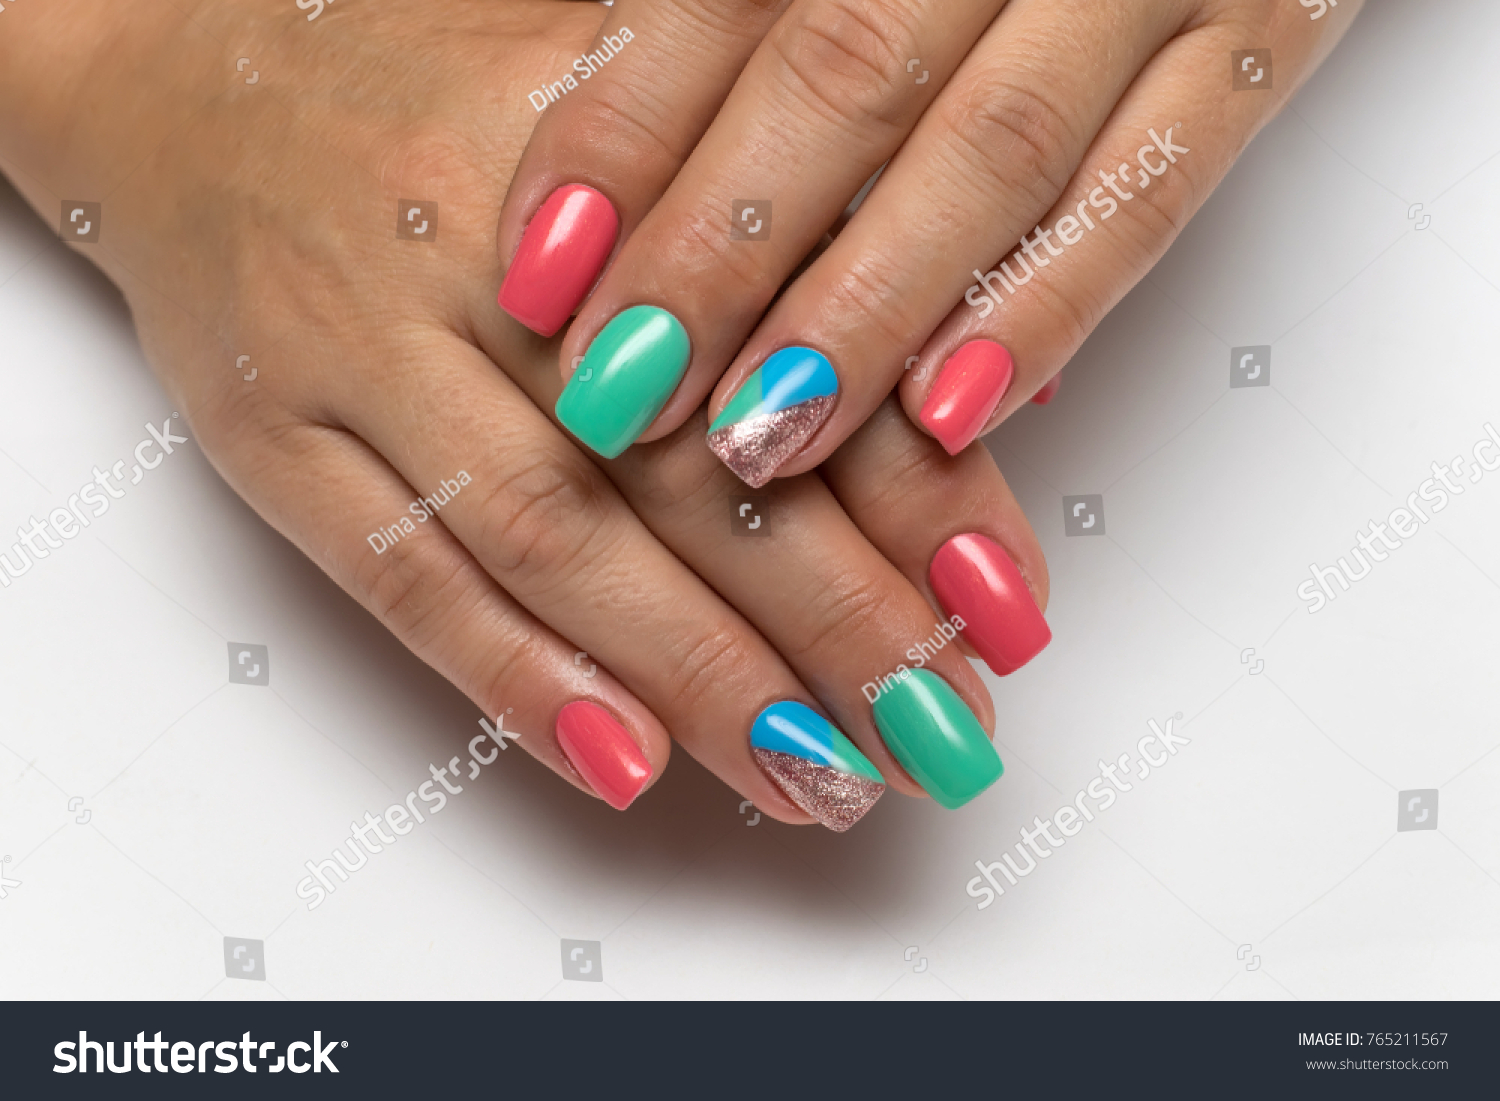 New Year Bright Blue Pink Gold Stock Photo 765211567 - Shutterstock